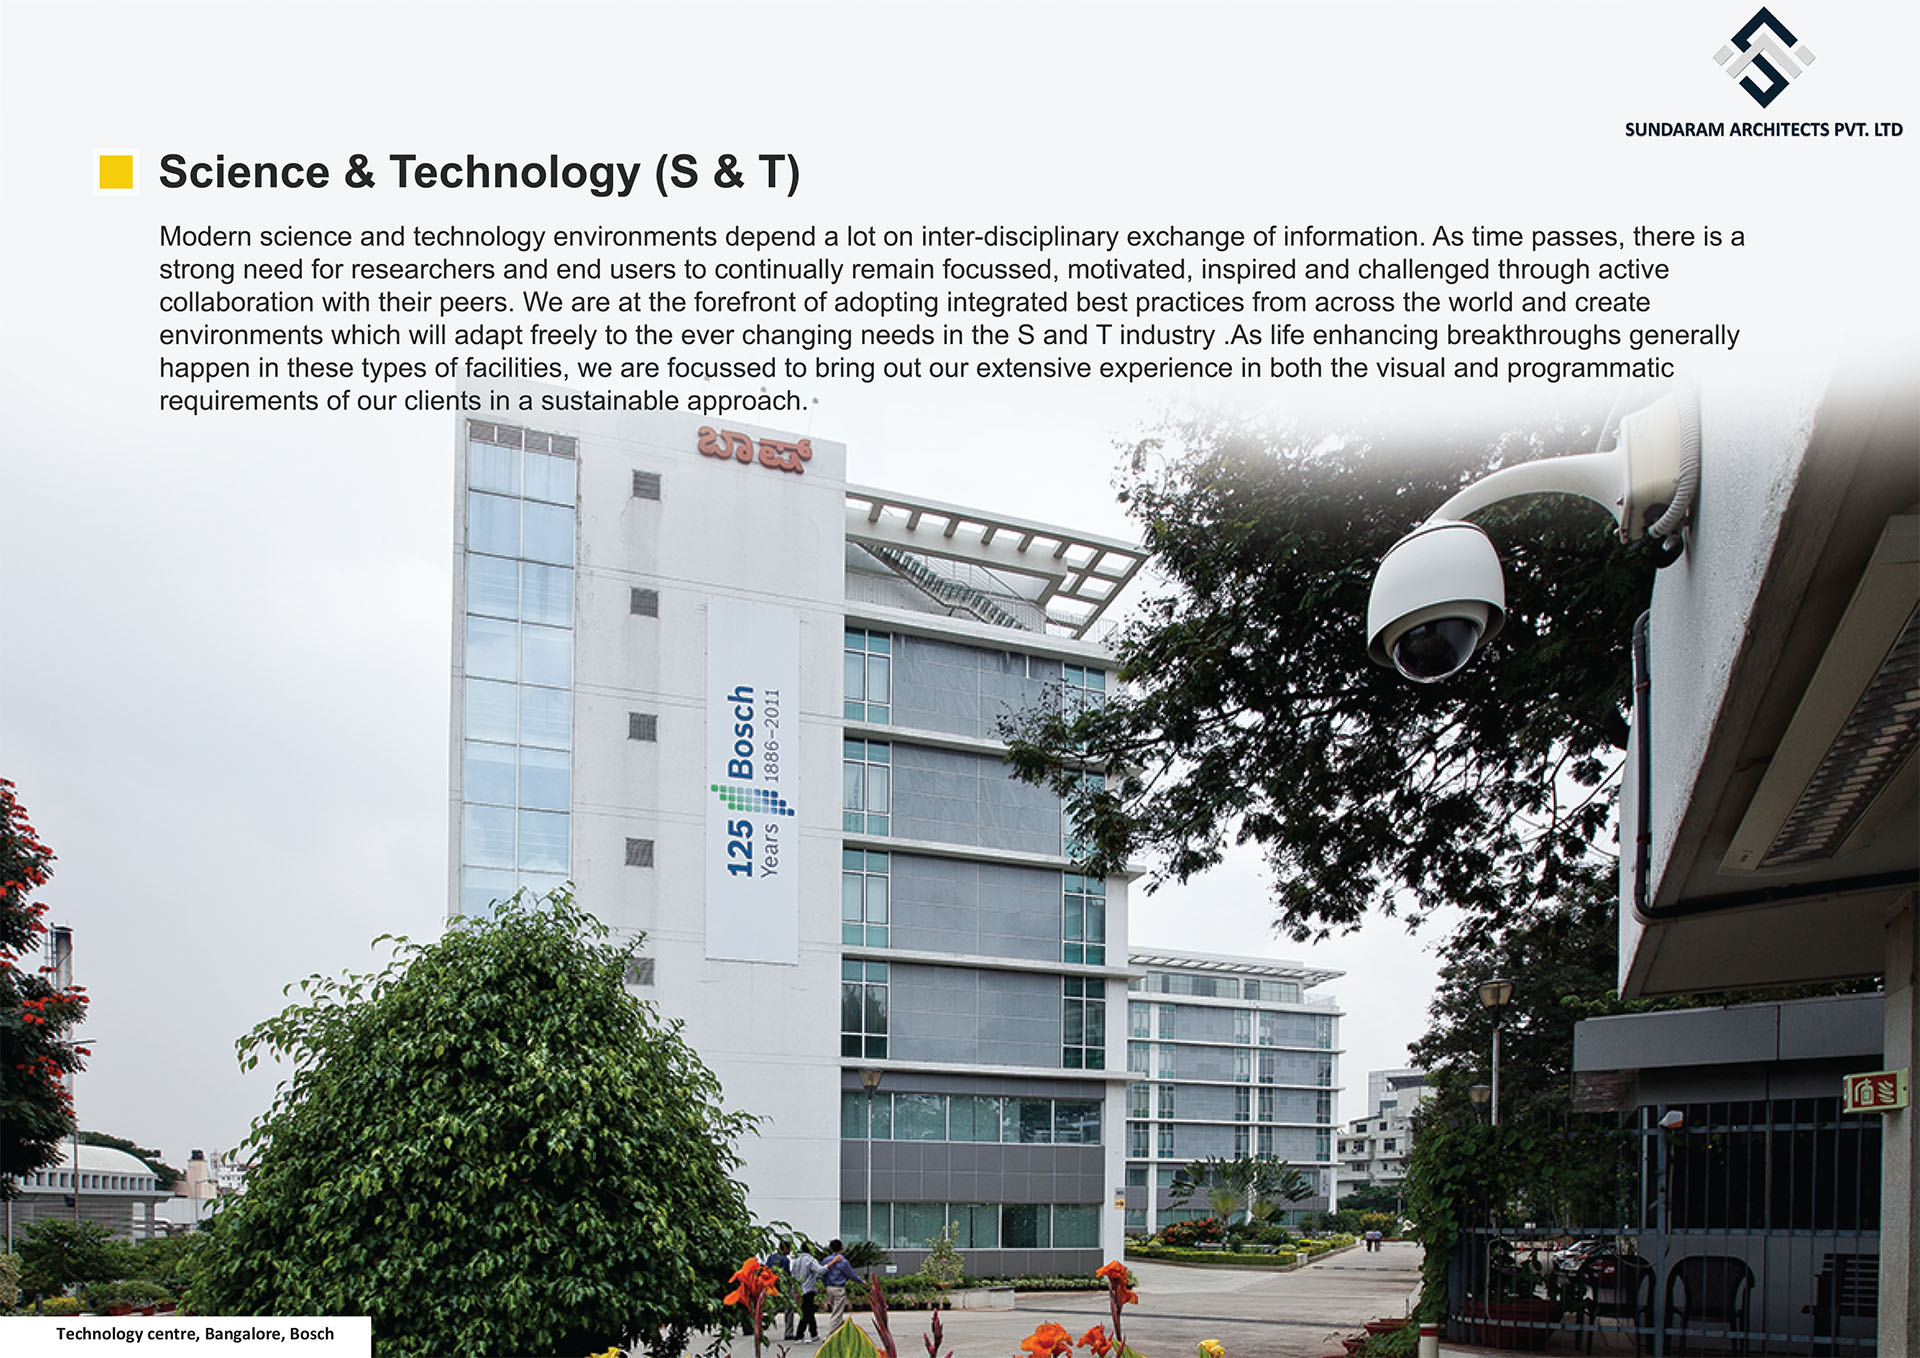 Technology Centre, Bangalore, Bosch - Science & Technology Design - Best Structural Design in India,Bangalore